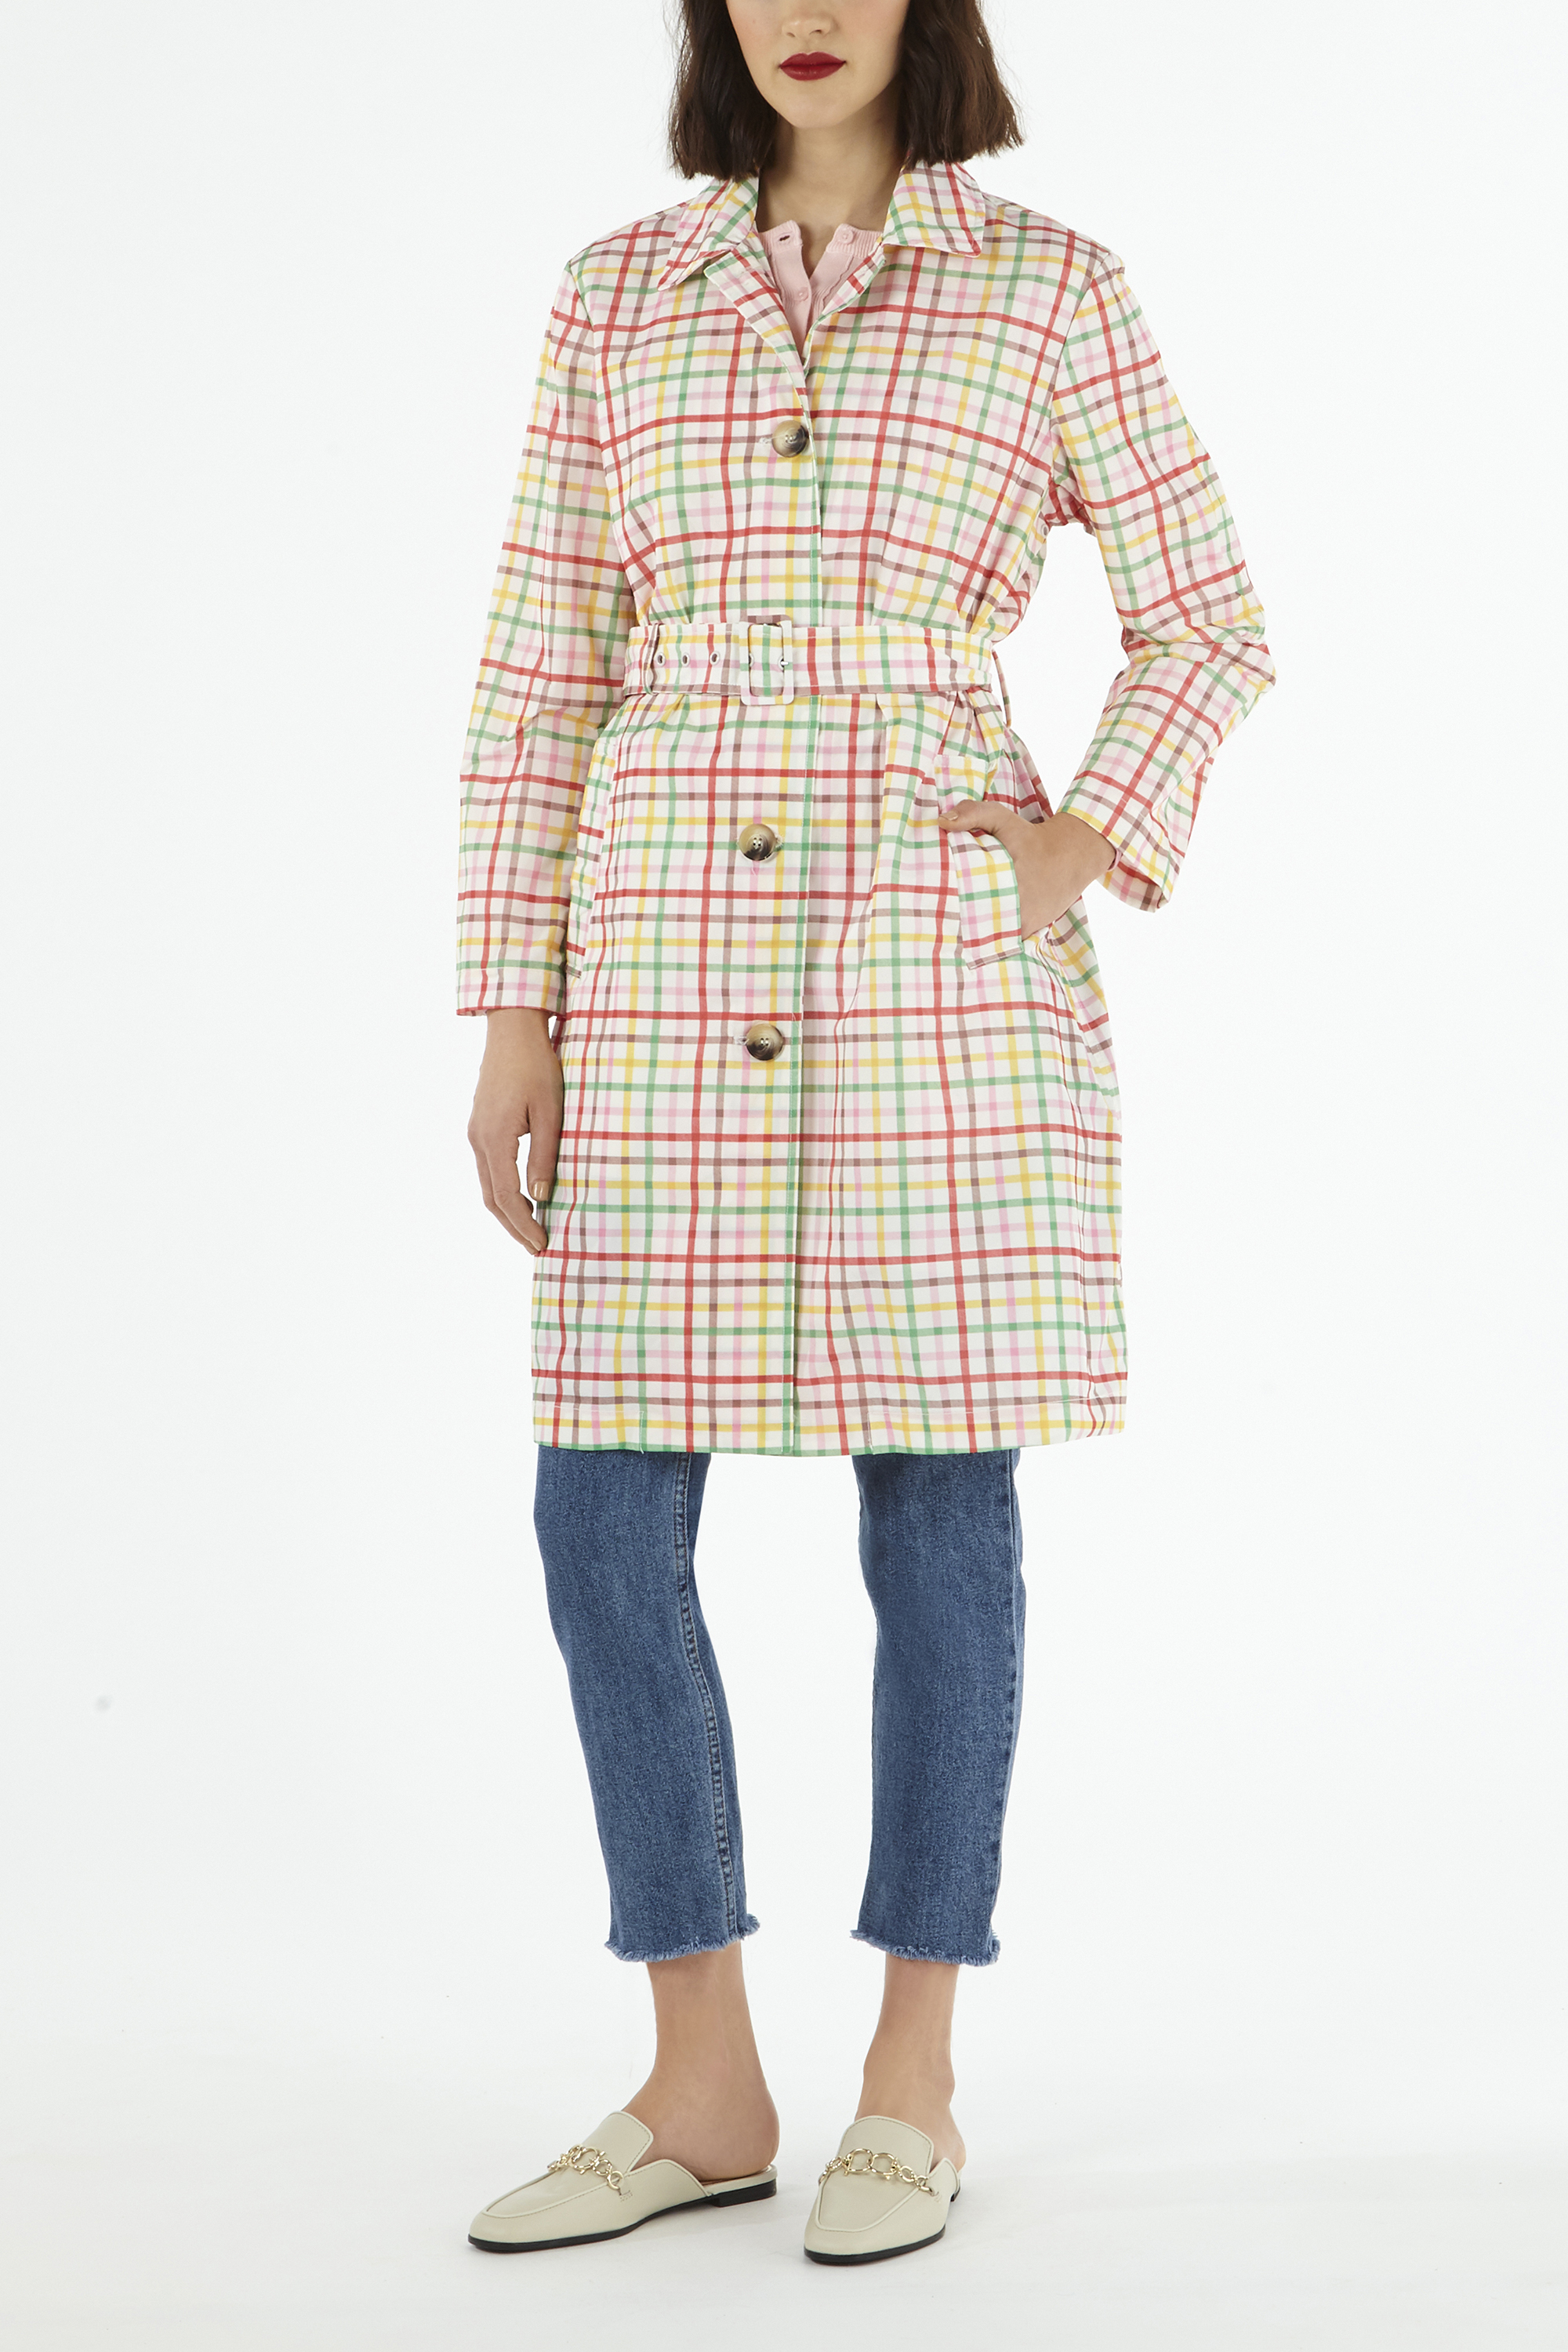 Cath Kidston Gingham Check Print Duster Coat in Warm Cream Multi, 100% Polyester, 10